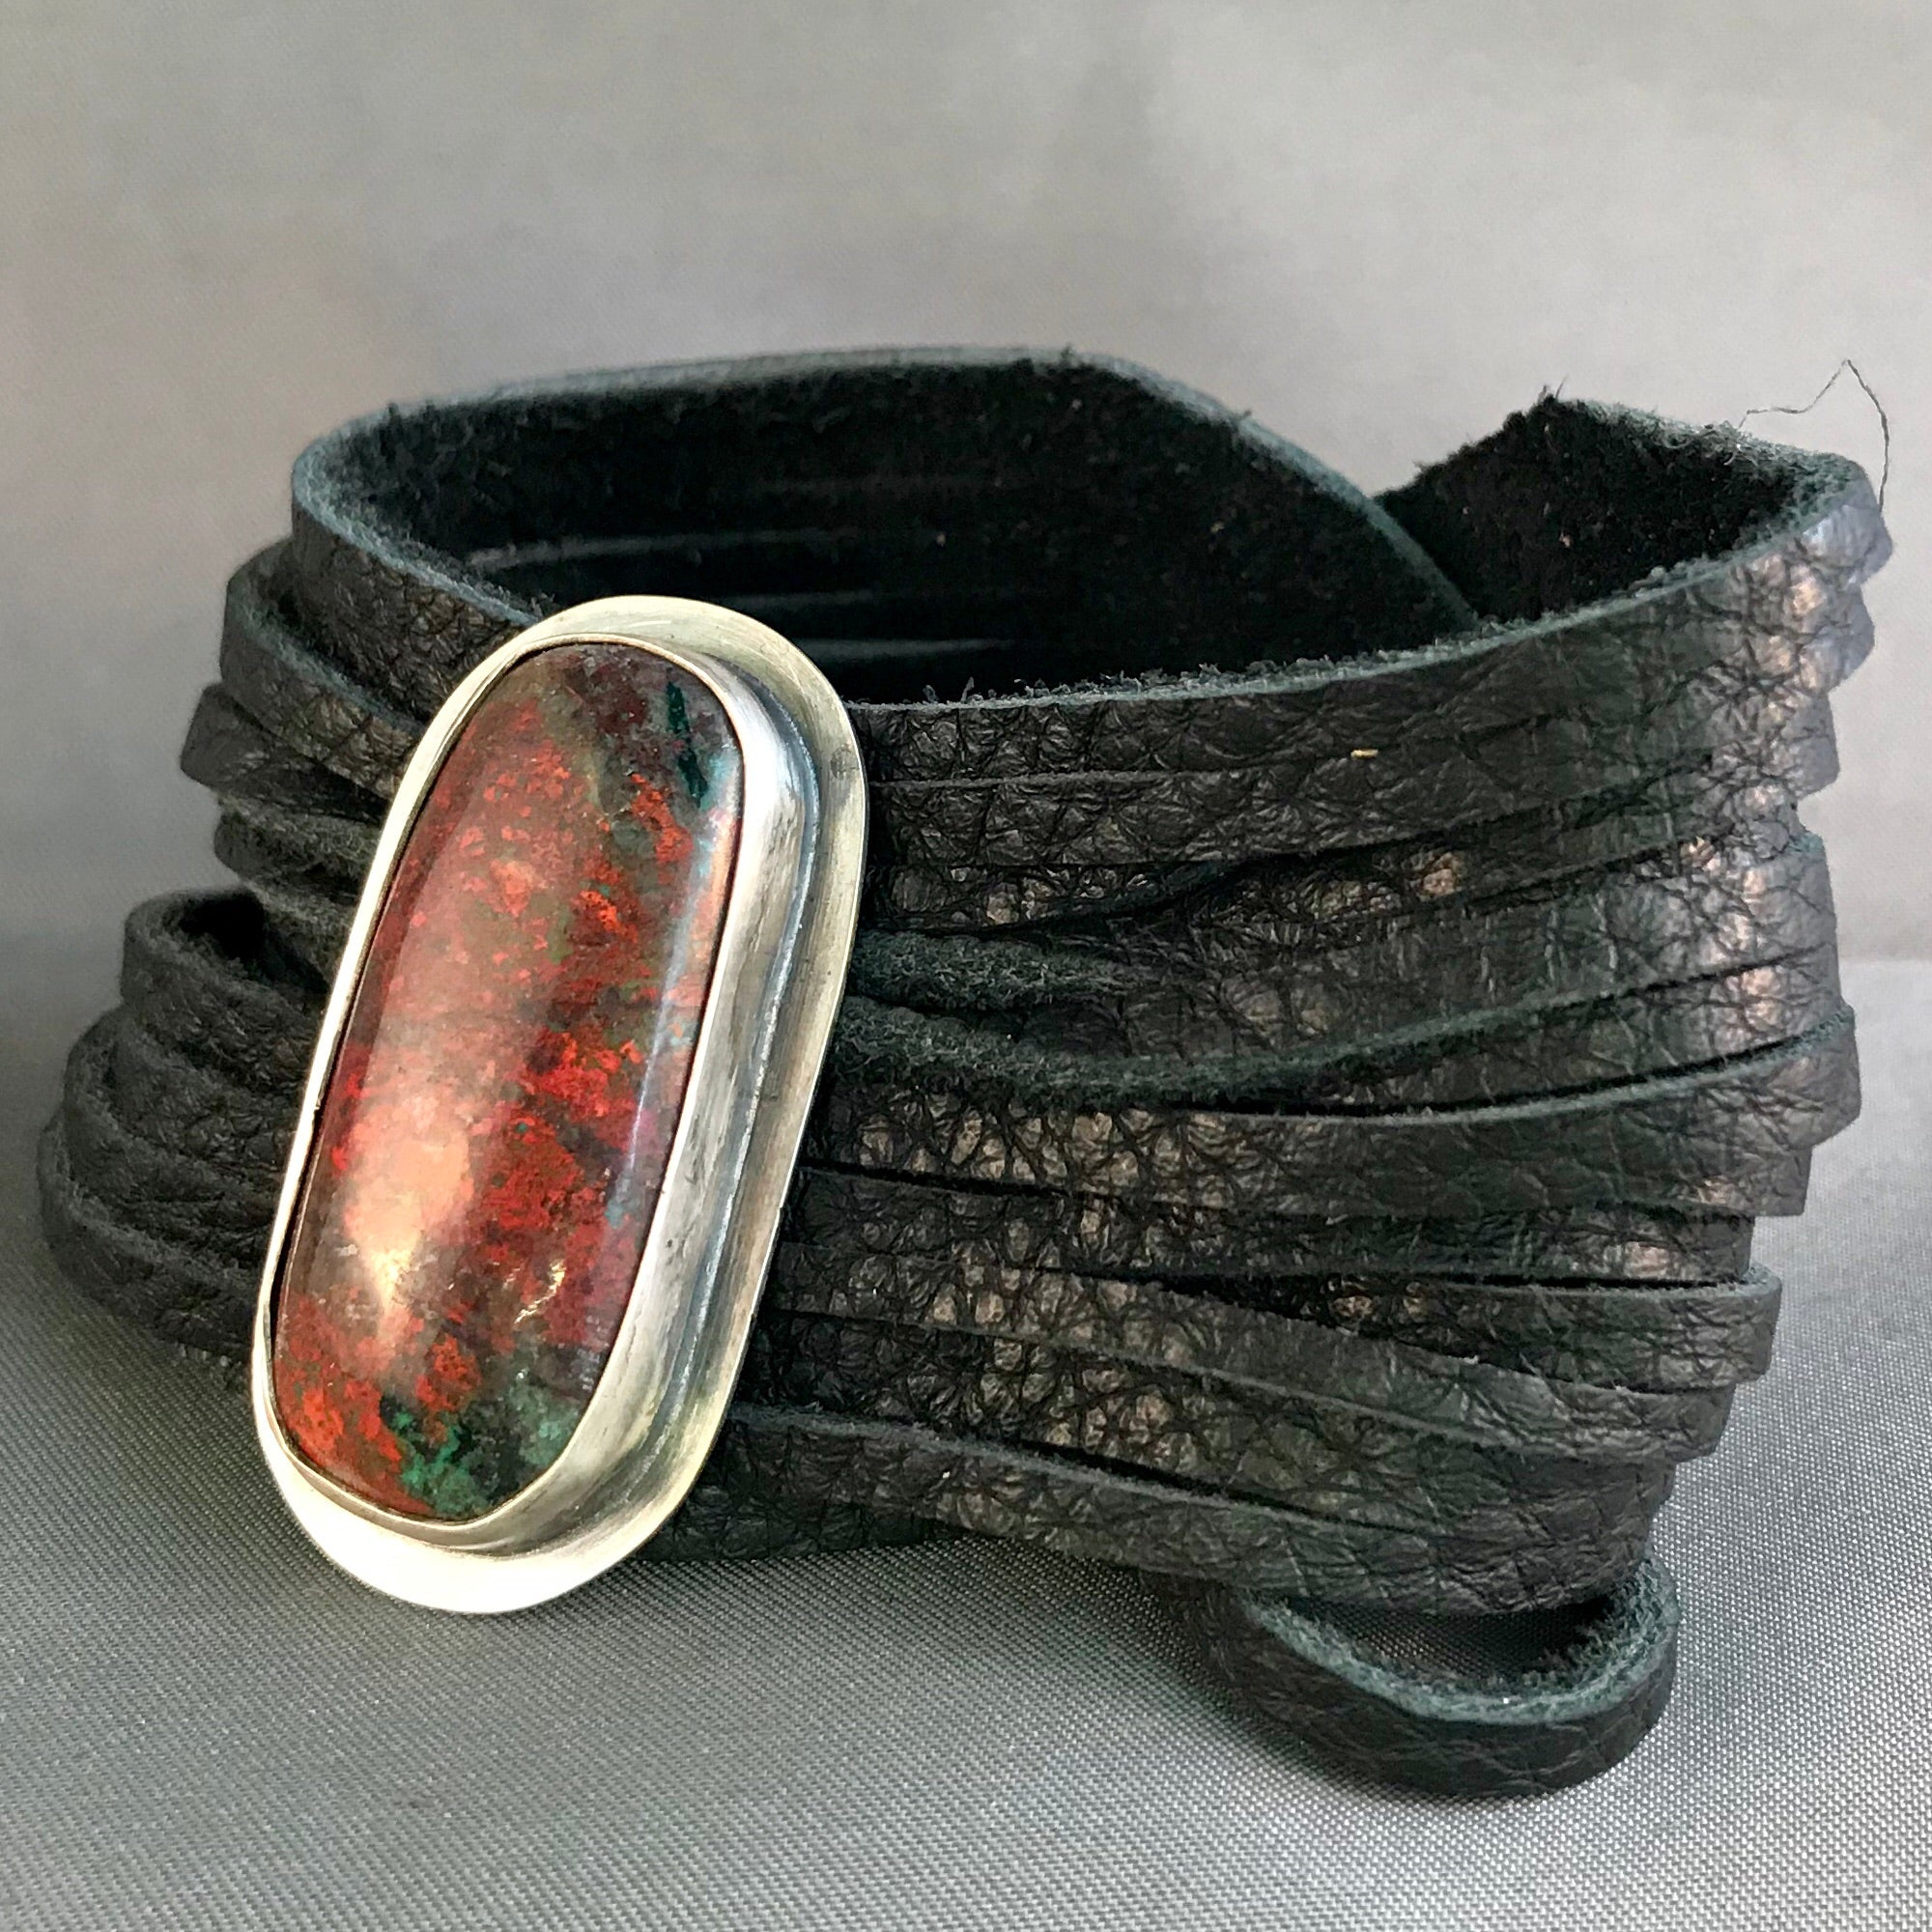 Sonora Sunrise Gemstone and shredded leather bracelet